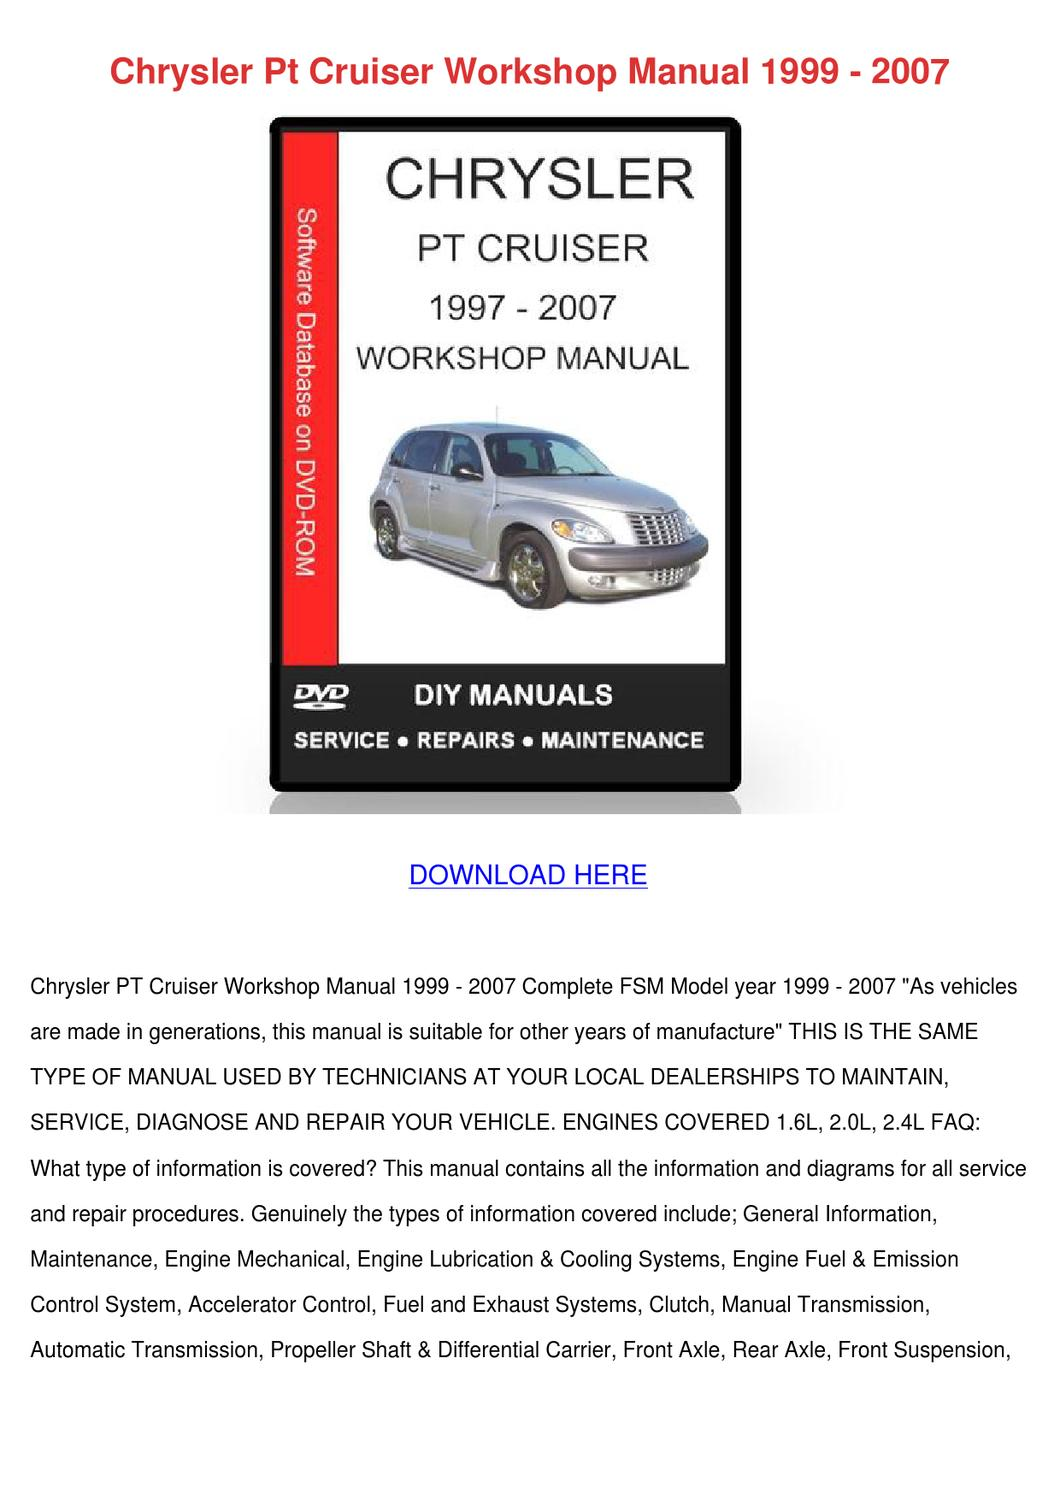 chrysler pt cruiser service manual pdf